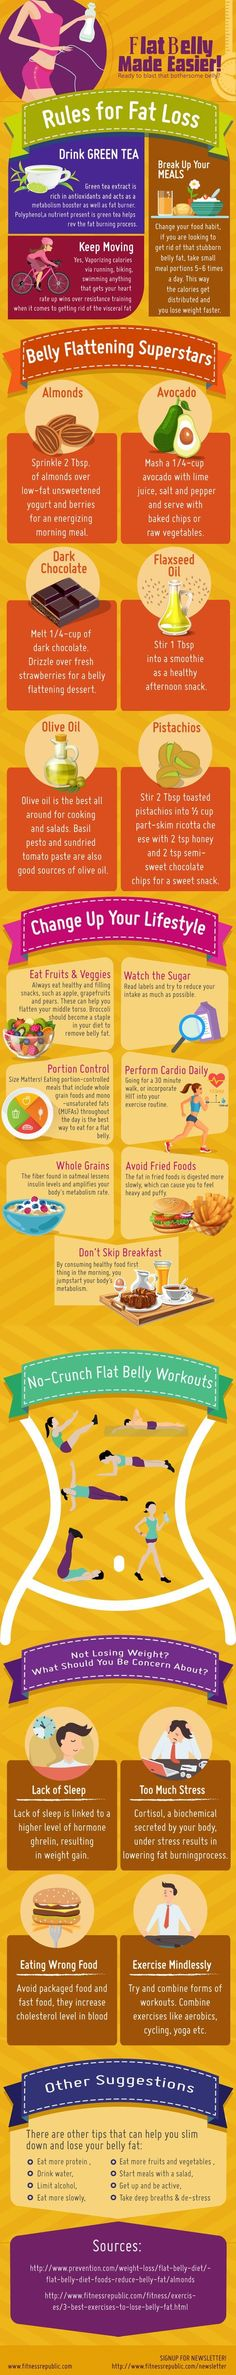 These 10 awesome fast weight loss lists are SO GOOD! I\'ve started to read the skinny rules and followed some of the tips and hacks and I\'m ALREADY LOSING WEIGHT! This is such an AWESOME POST! I\'m DEFINITELY PINNING for later!